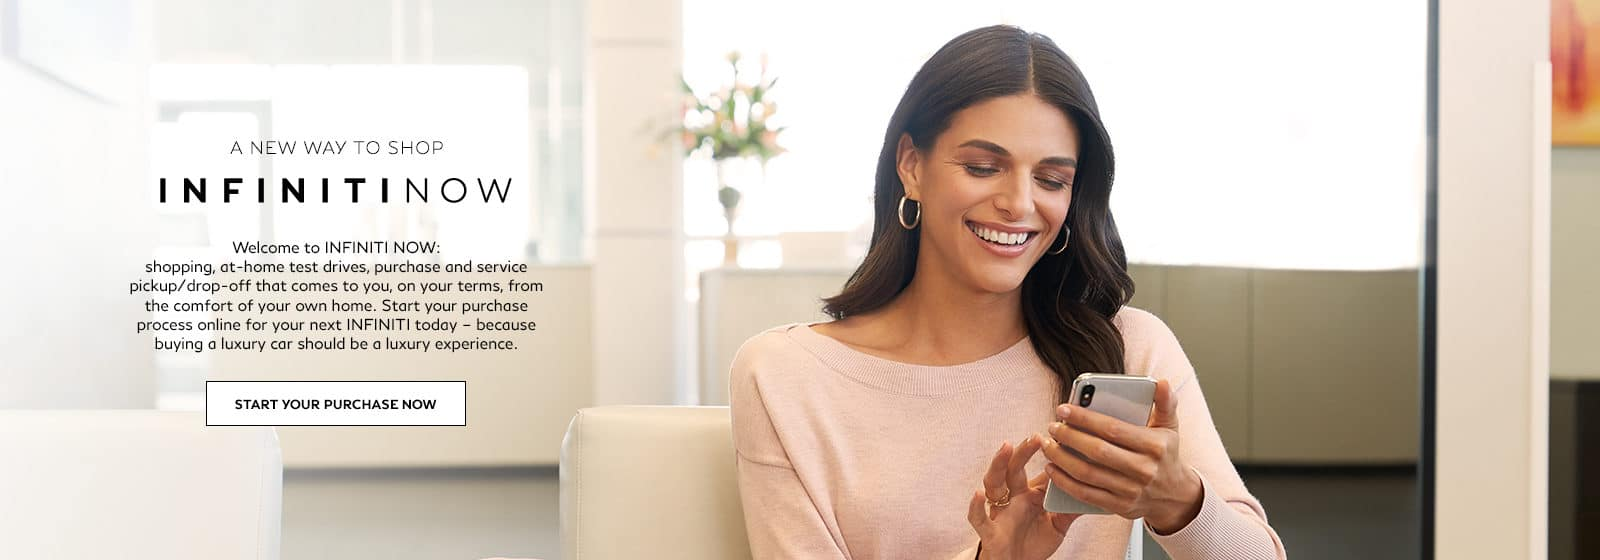 A new way to shop. INFINITI Now. Welcome to INFINITI Now: shopping, at-home test drives, purchase and service pickup/drop-off that comes to you, on your terms, from the comfort of your own home. Start your purchase process online for your next INFINITI today. - because buying a luxury car should be a luxury experience. Start your purchase now.